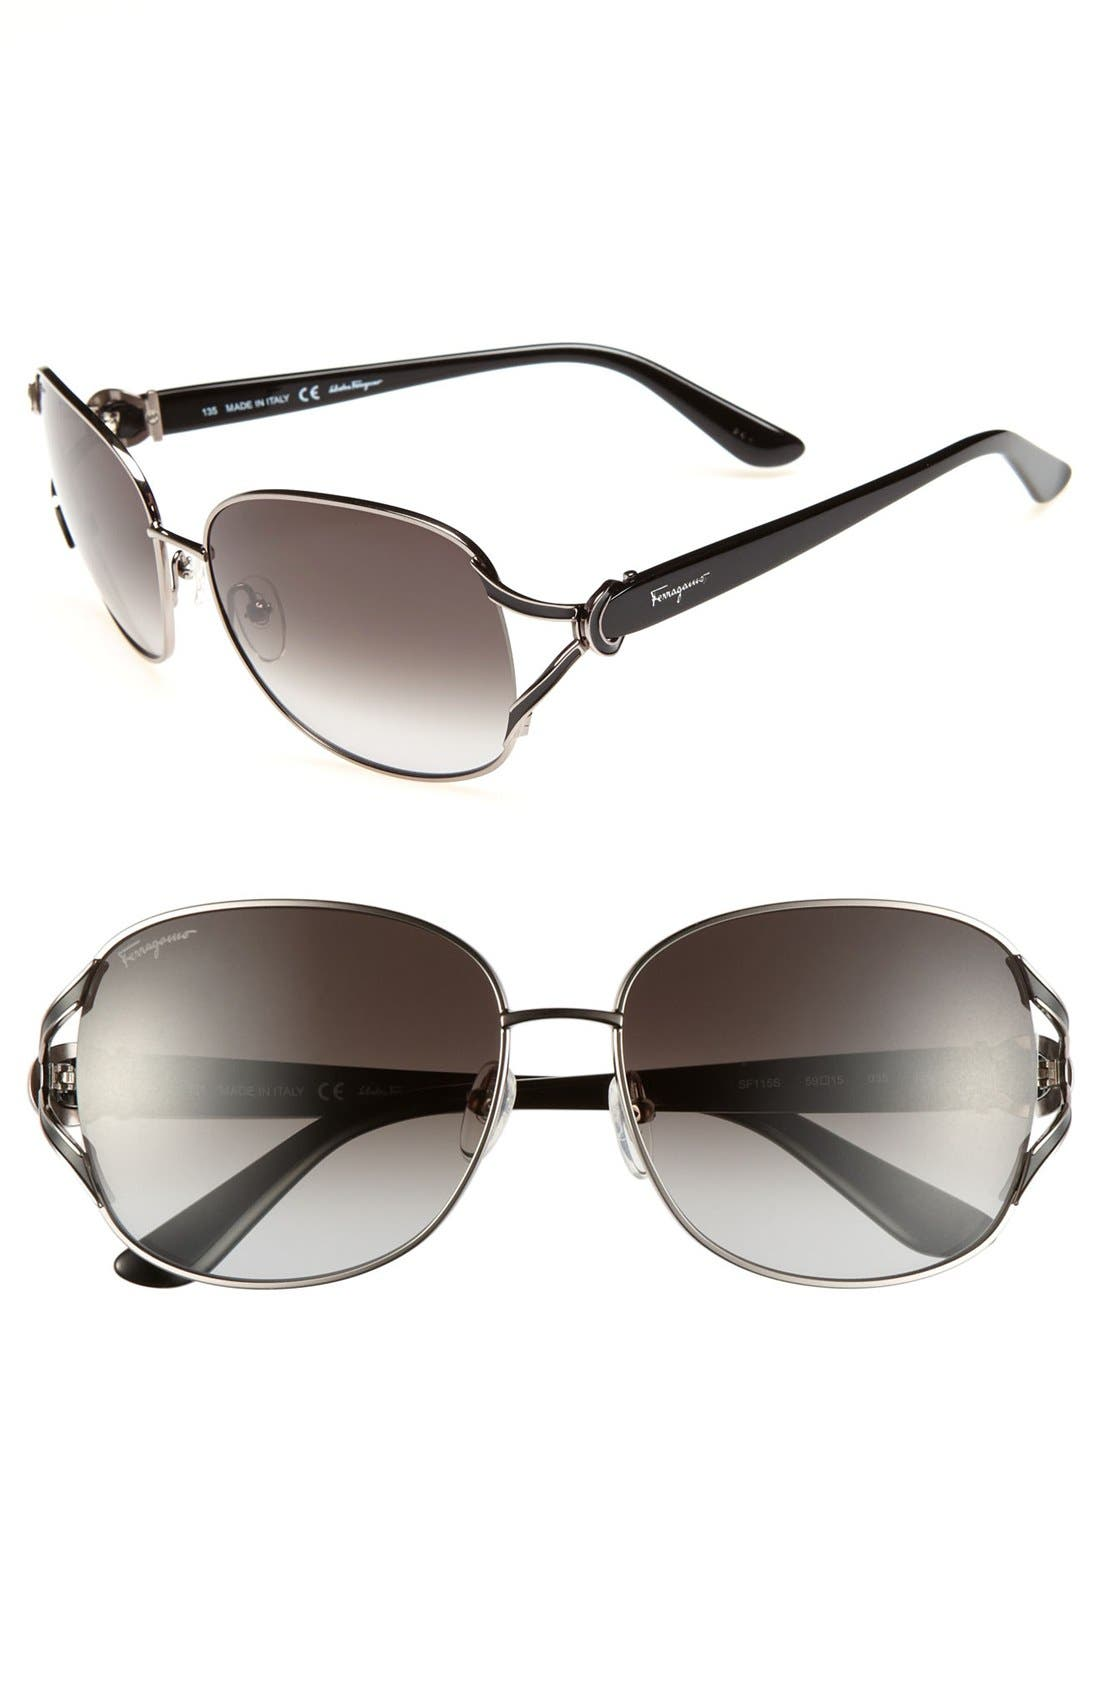 Main Image - Salvatore Ferragamo 59mm Metal Sunglasses